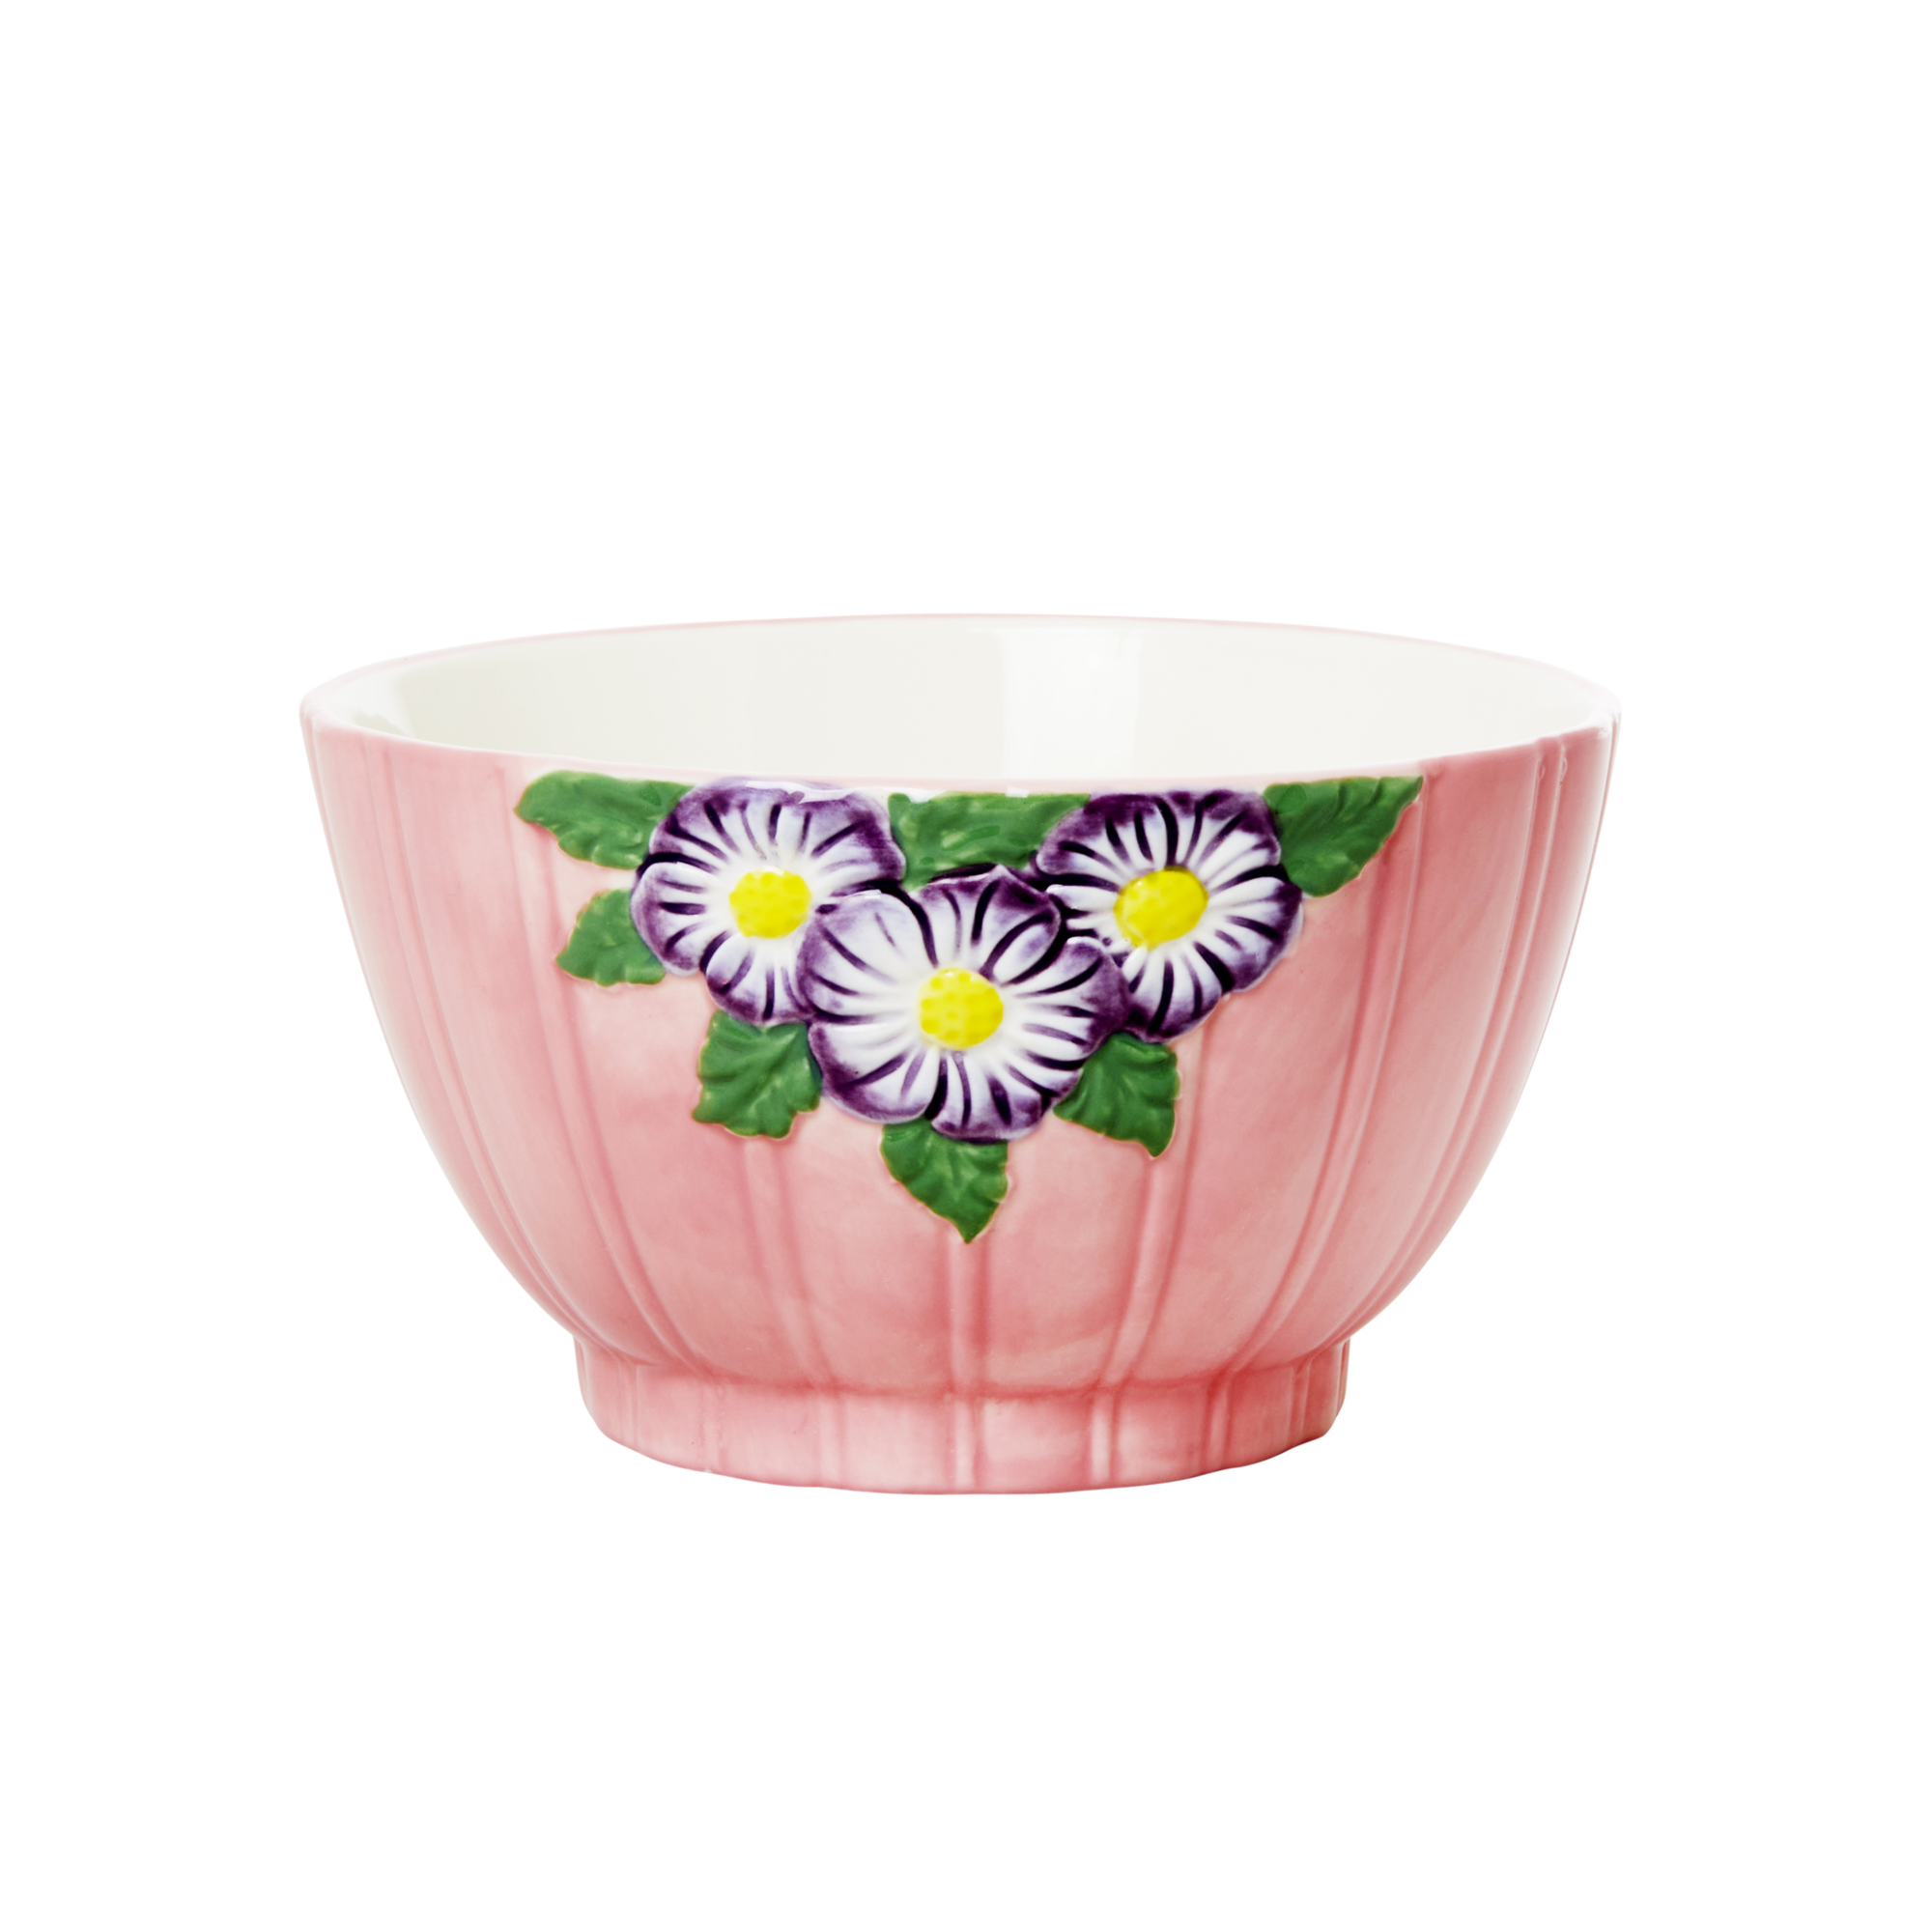 Rice - Ceramic Bowl with Embossed Flower Design - Pink